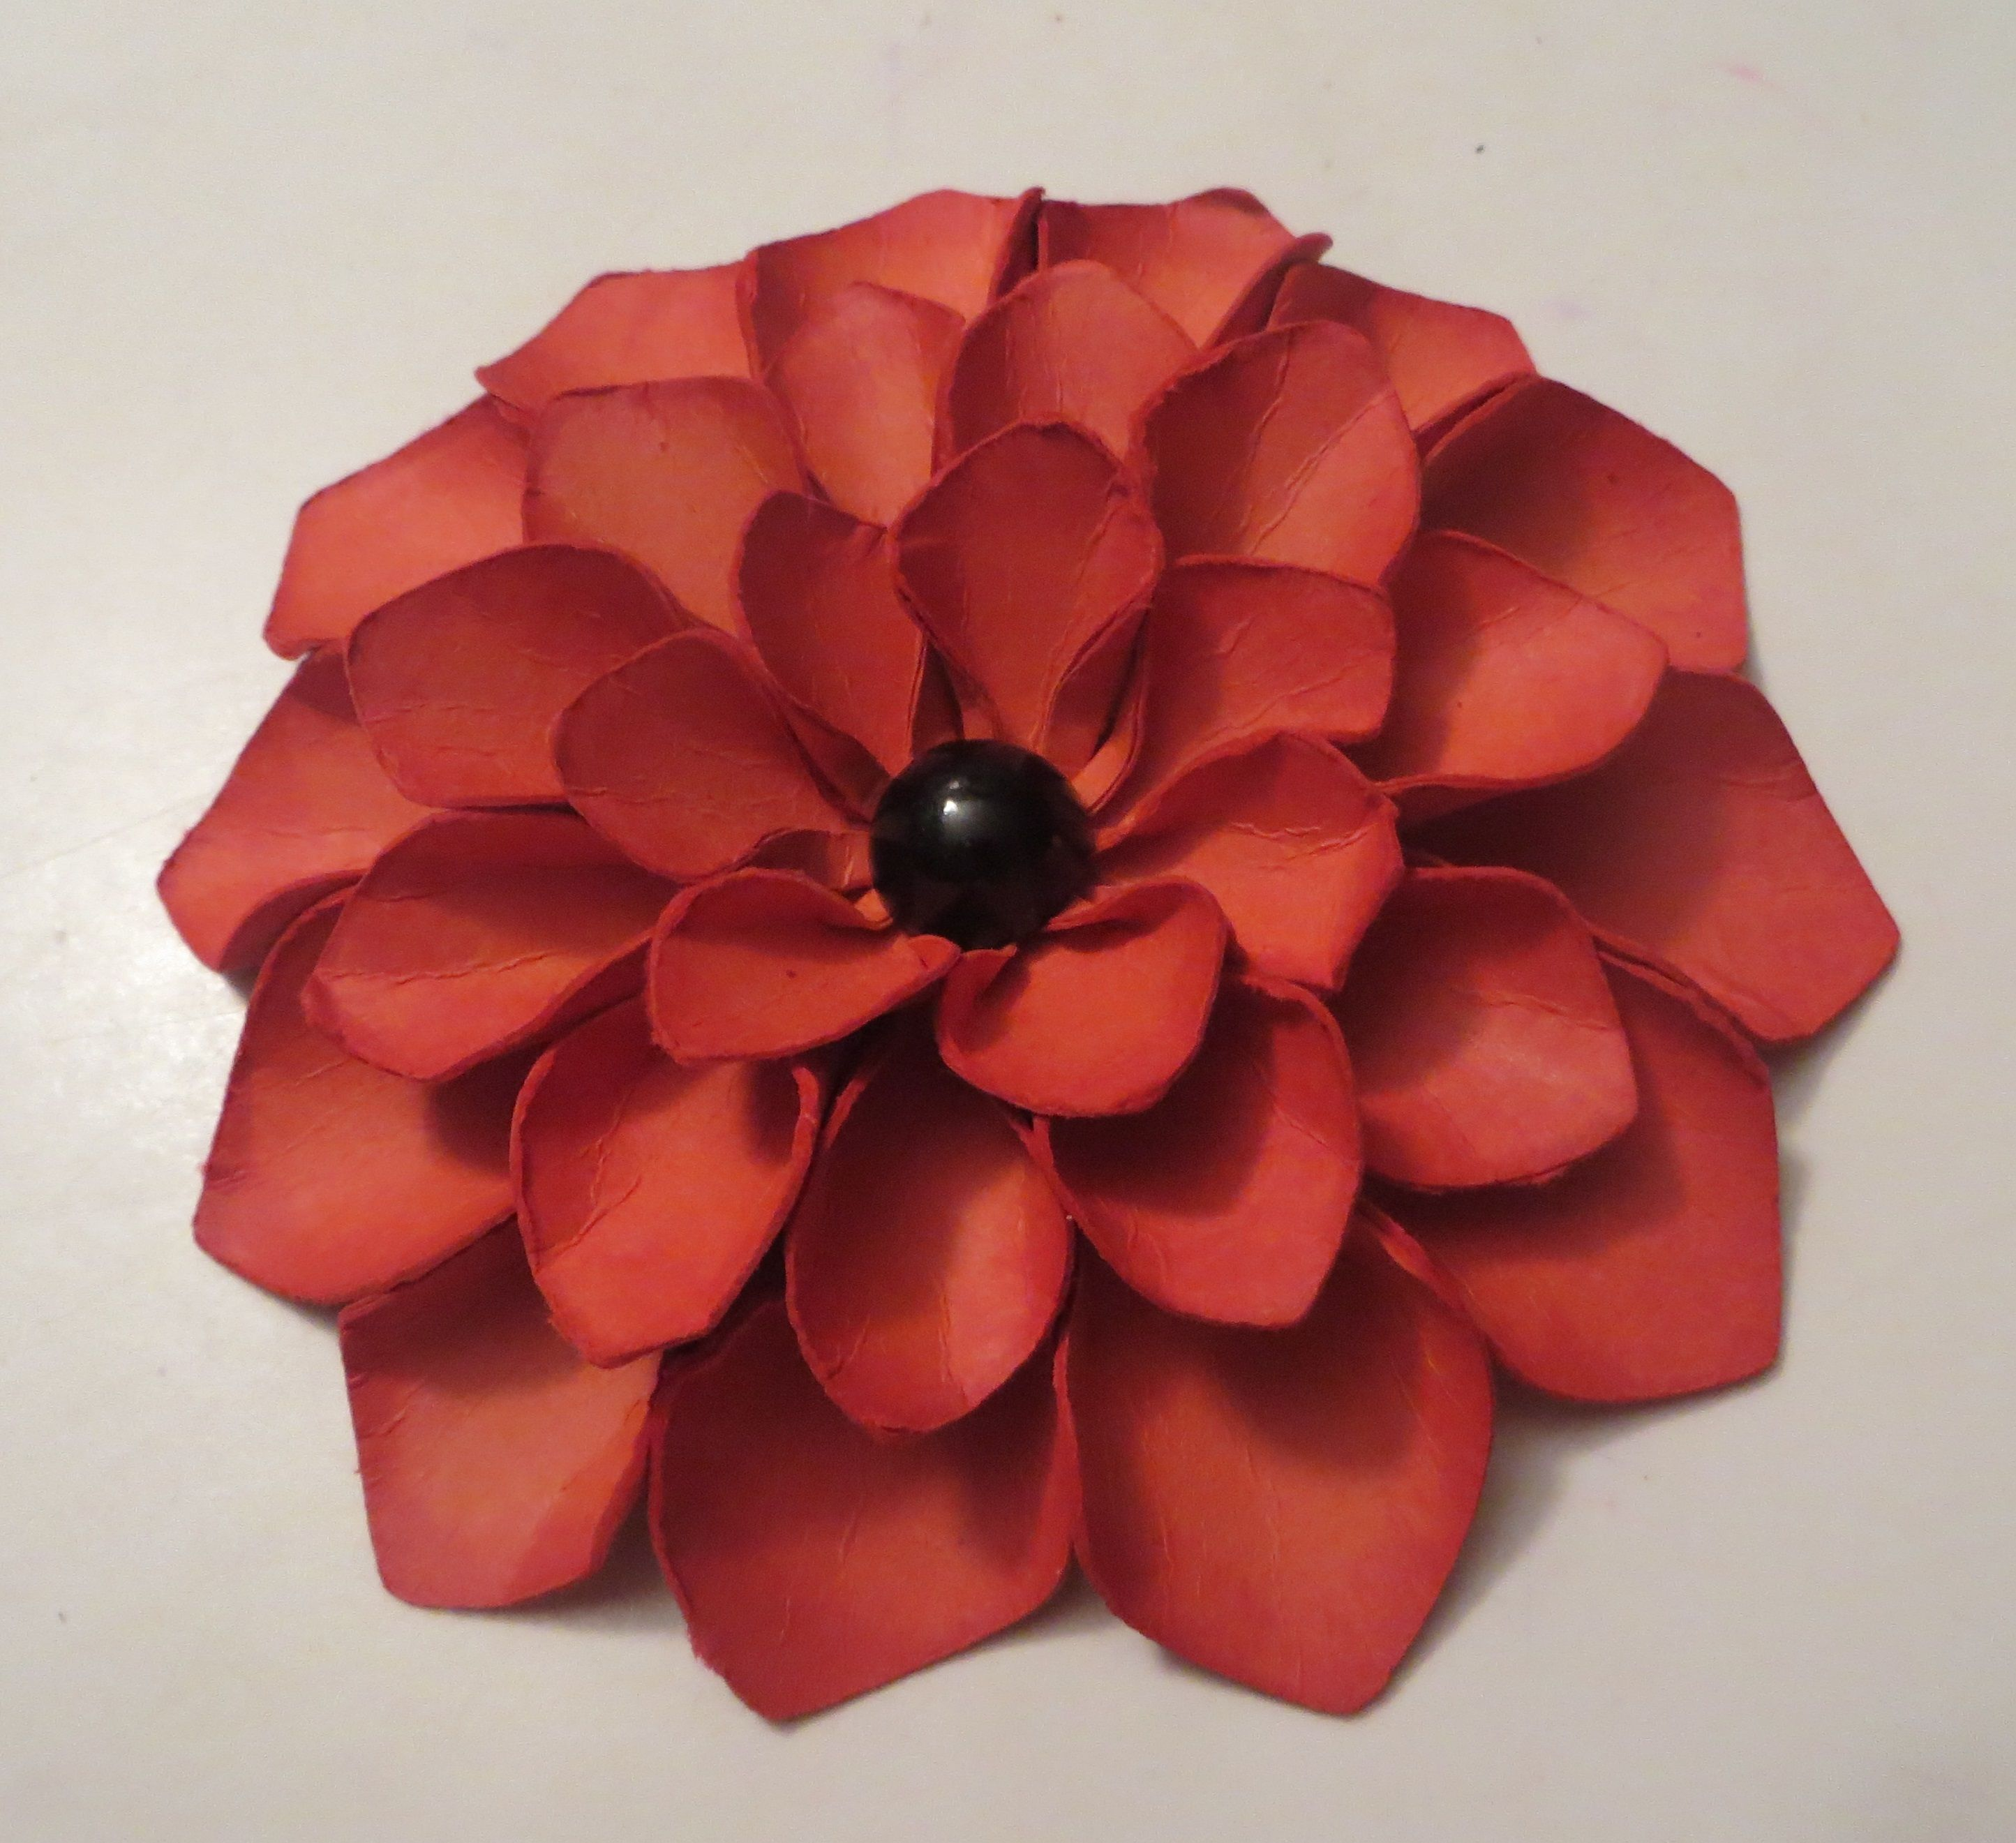 free svg file i found when searching for 3d flower svgs